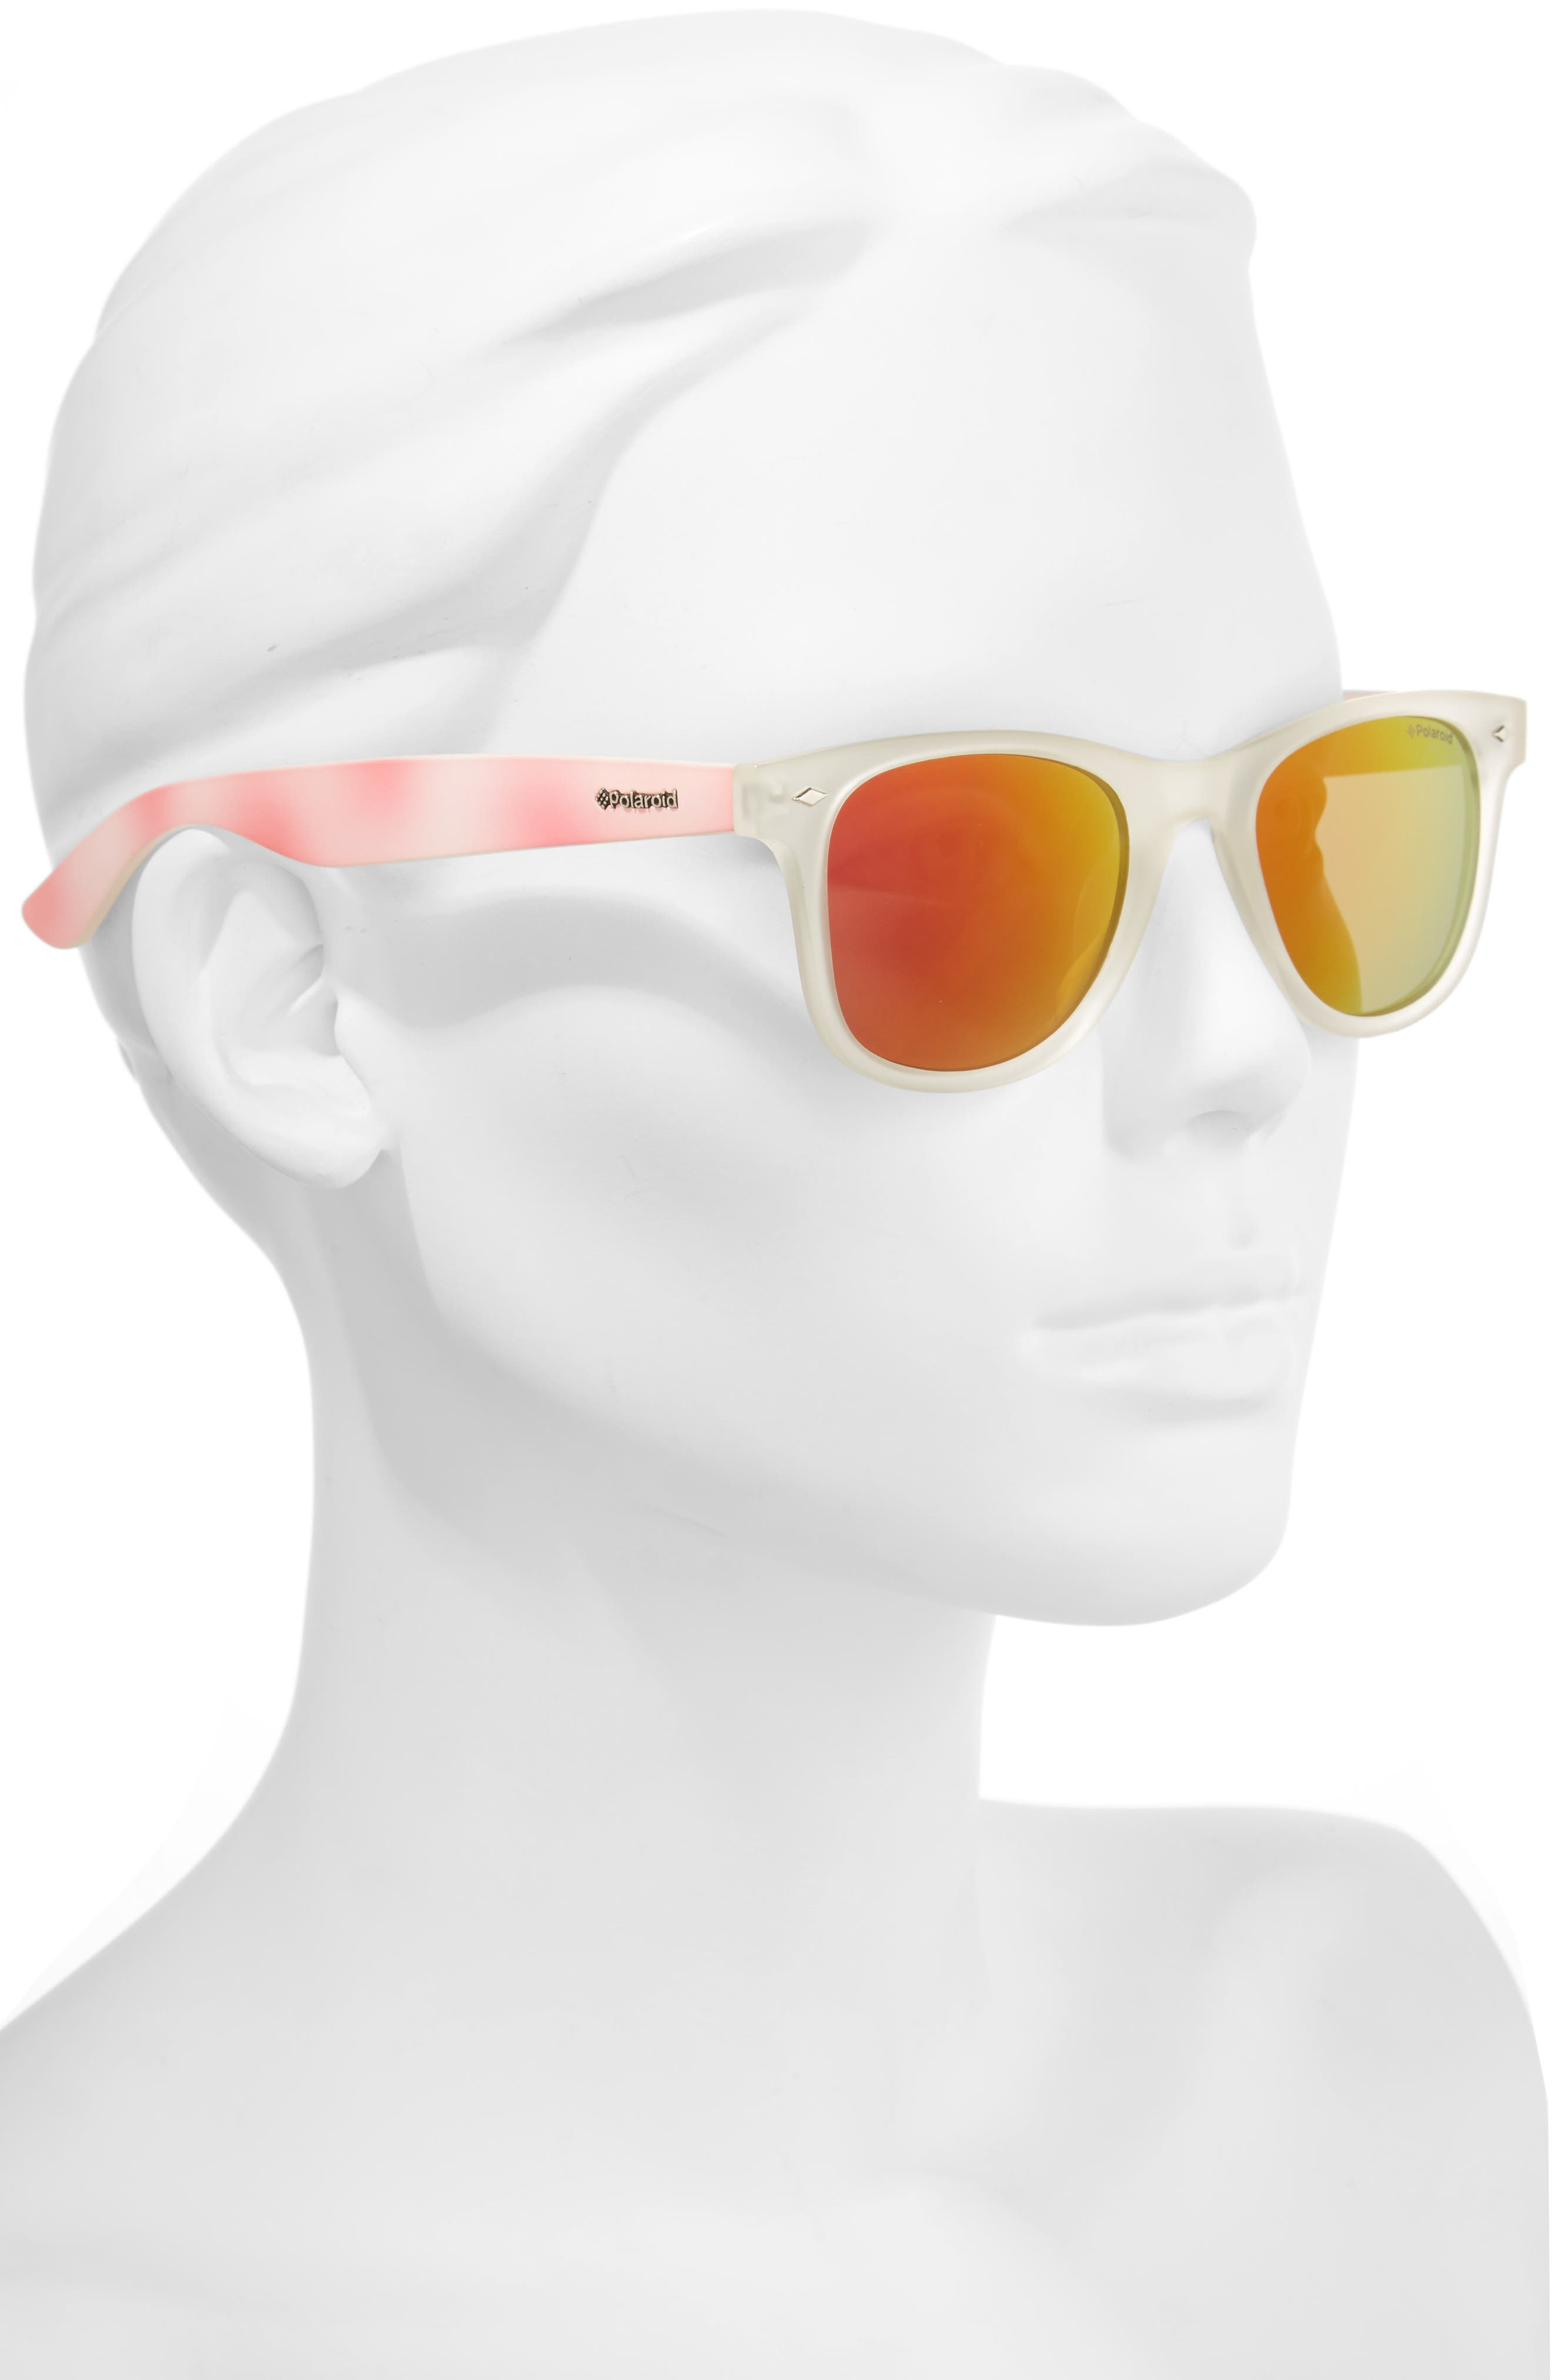 50mm Polarized Sunglasses,                             Alternate thumbnail 2, color,                             Bright Pink